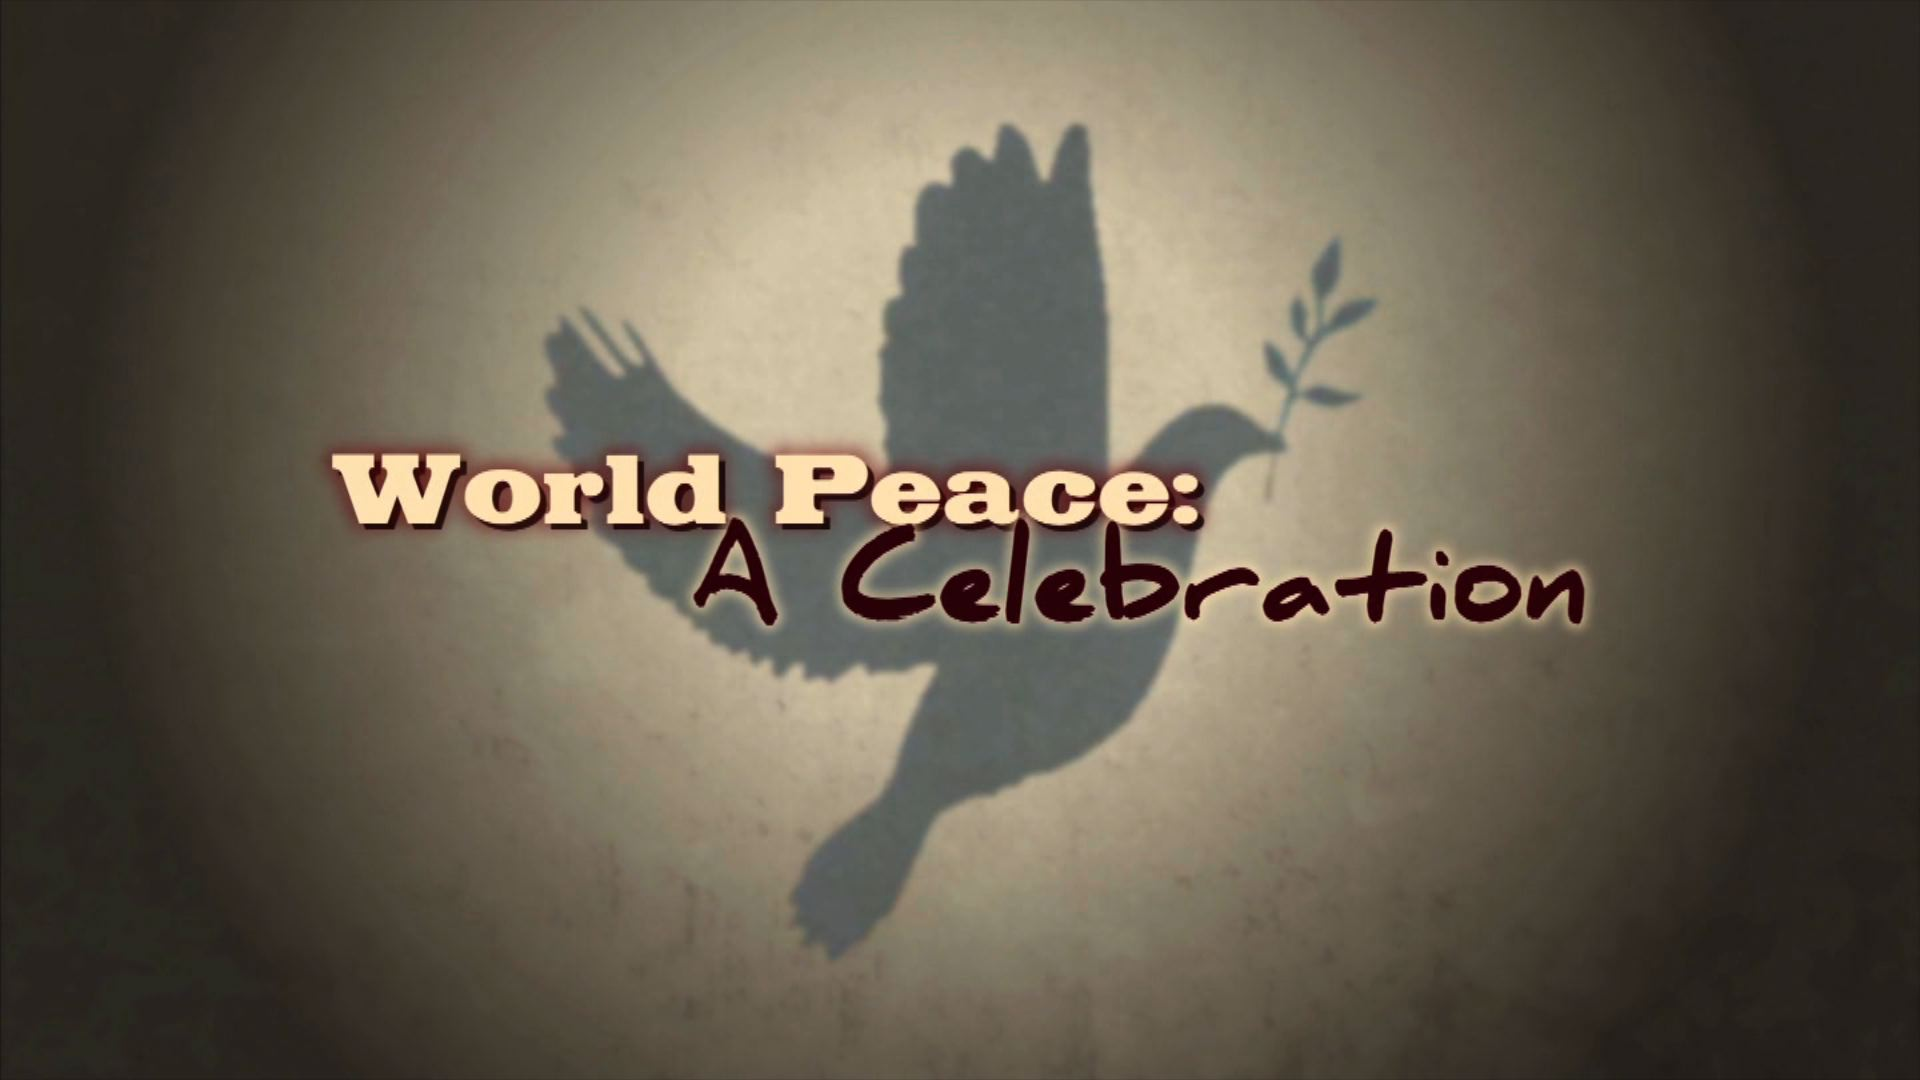 World Peace: A Celebration